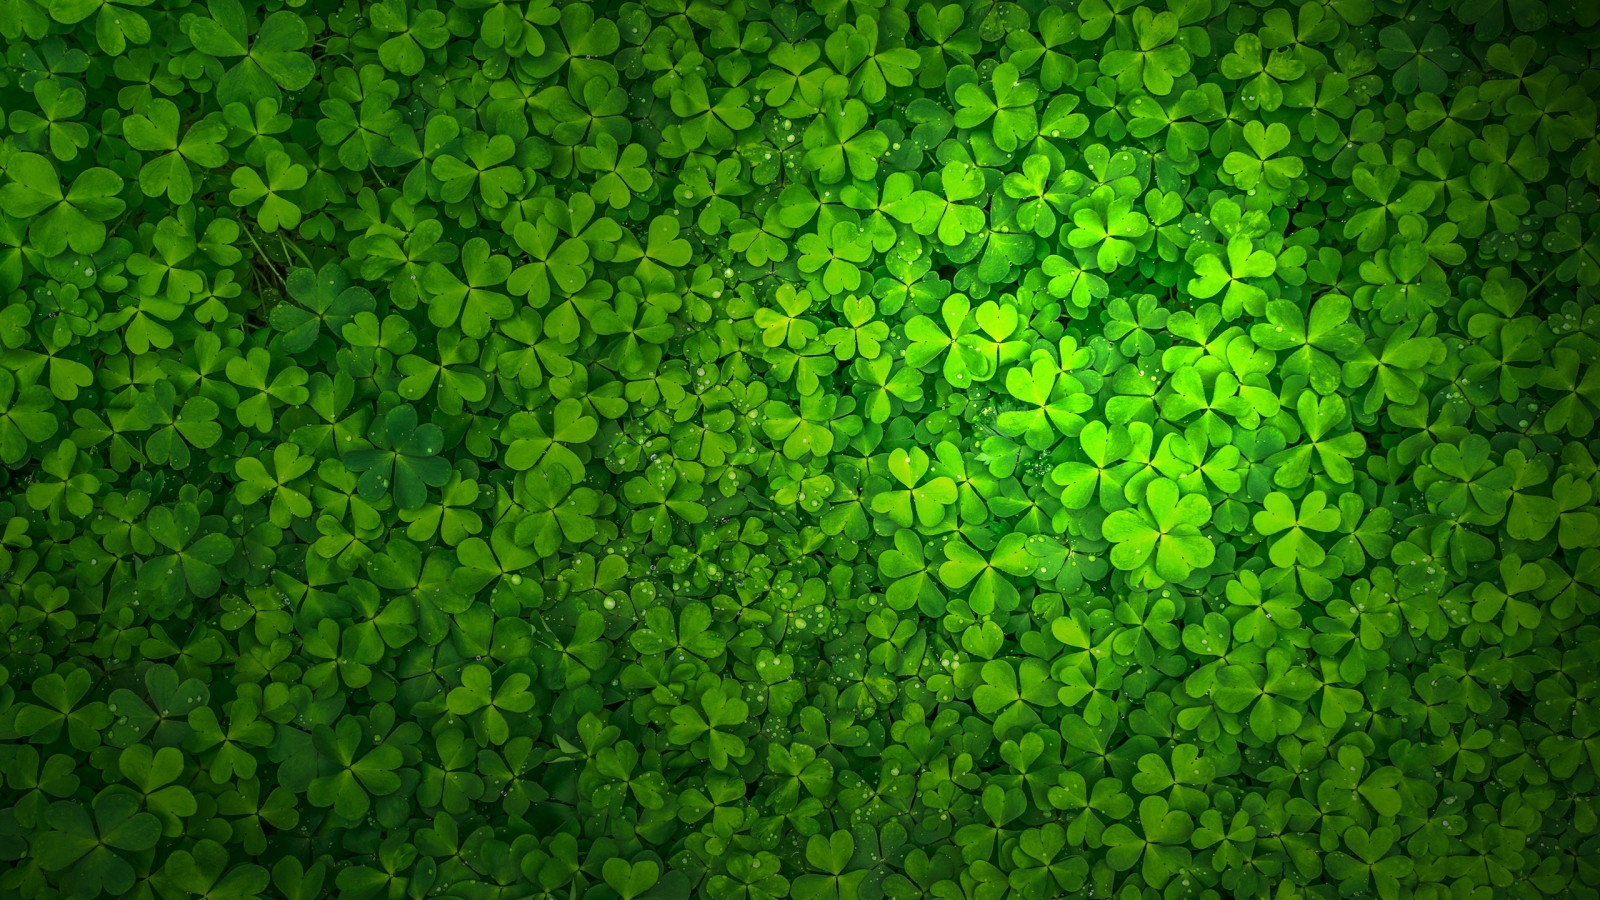 St Patrick's Day for 1600 x 900 HDTV resolution